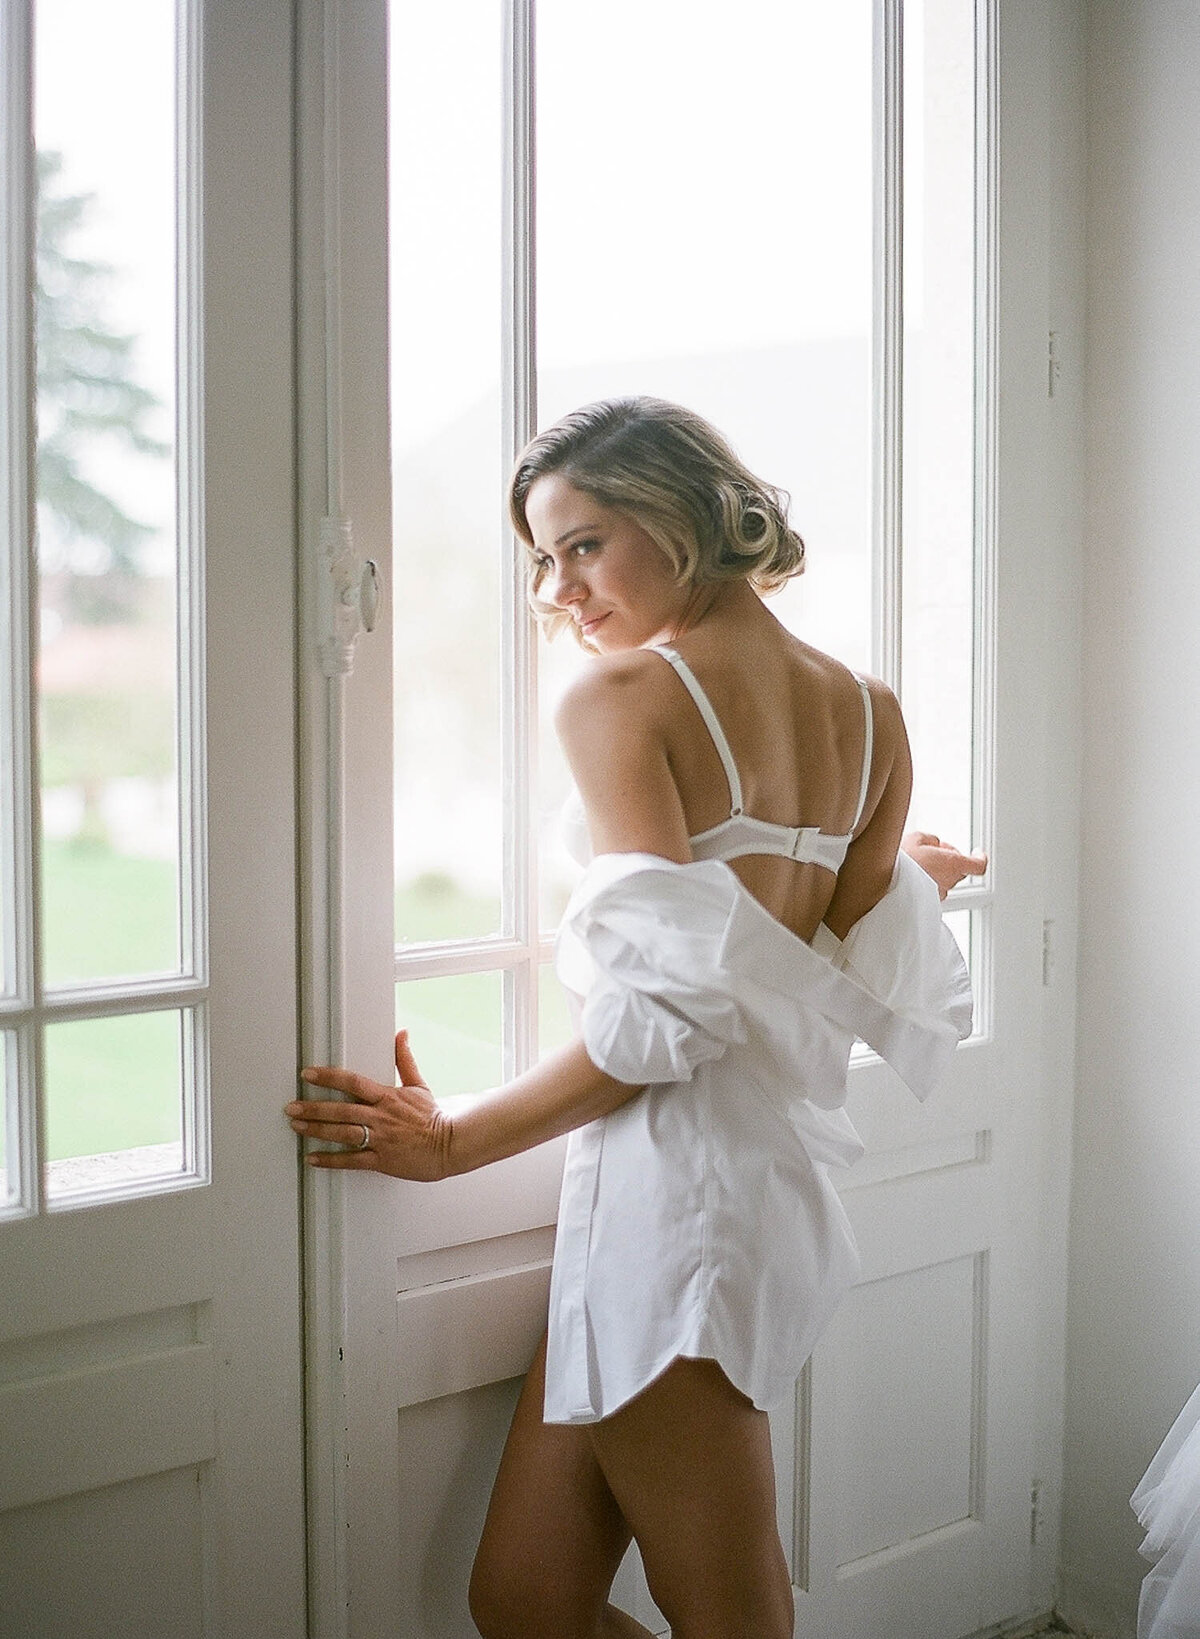 chateau-de-varennes-boudoir-wedding-couple-11